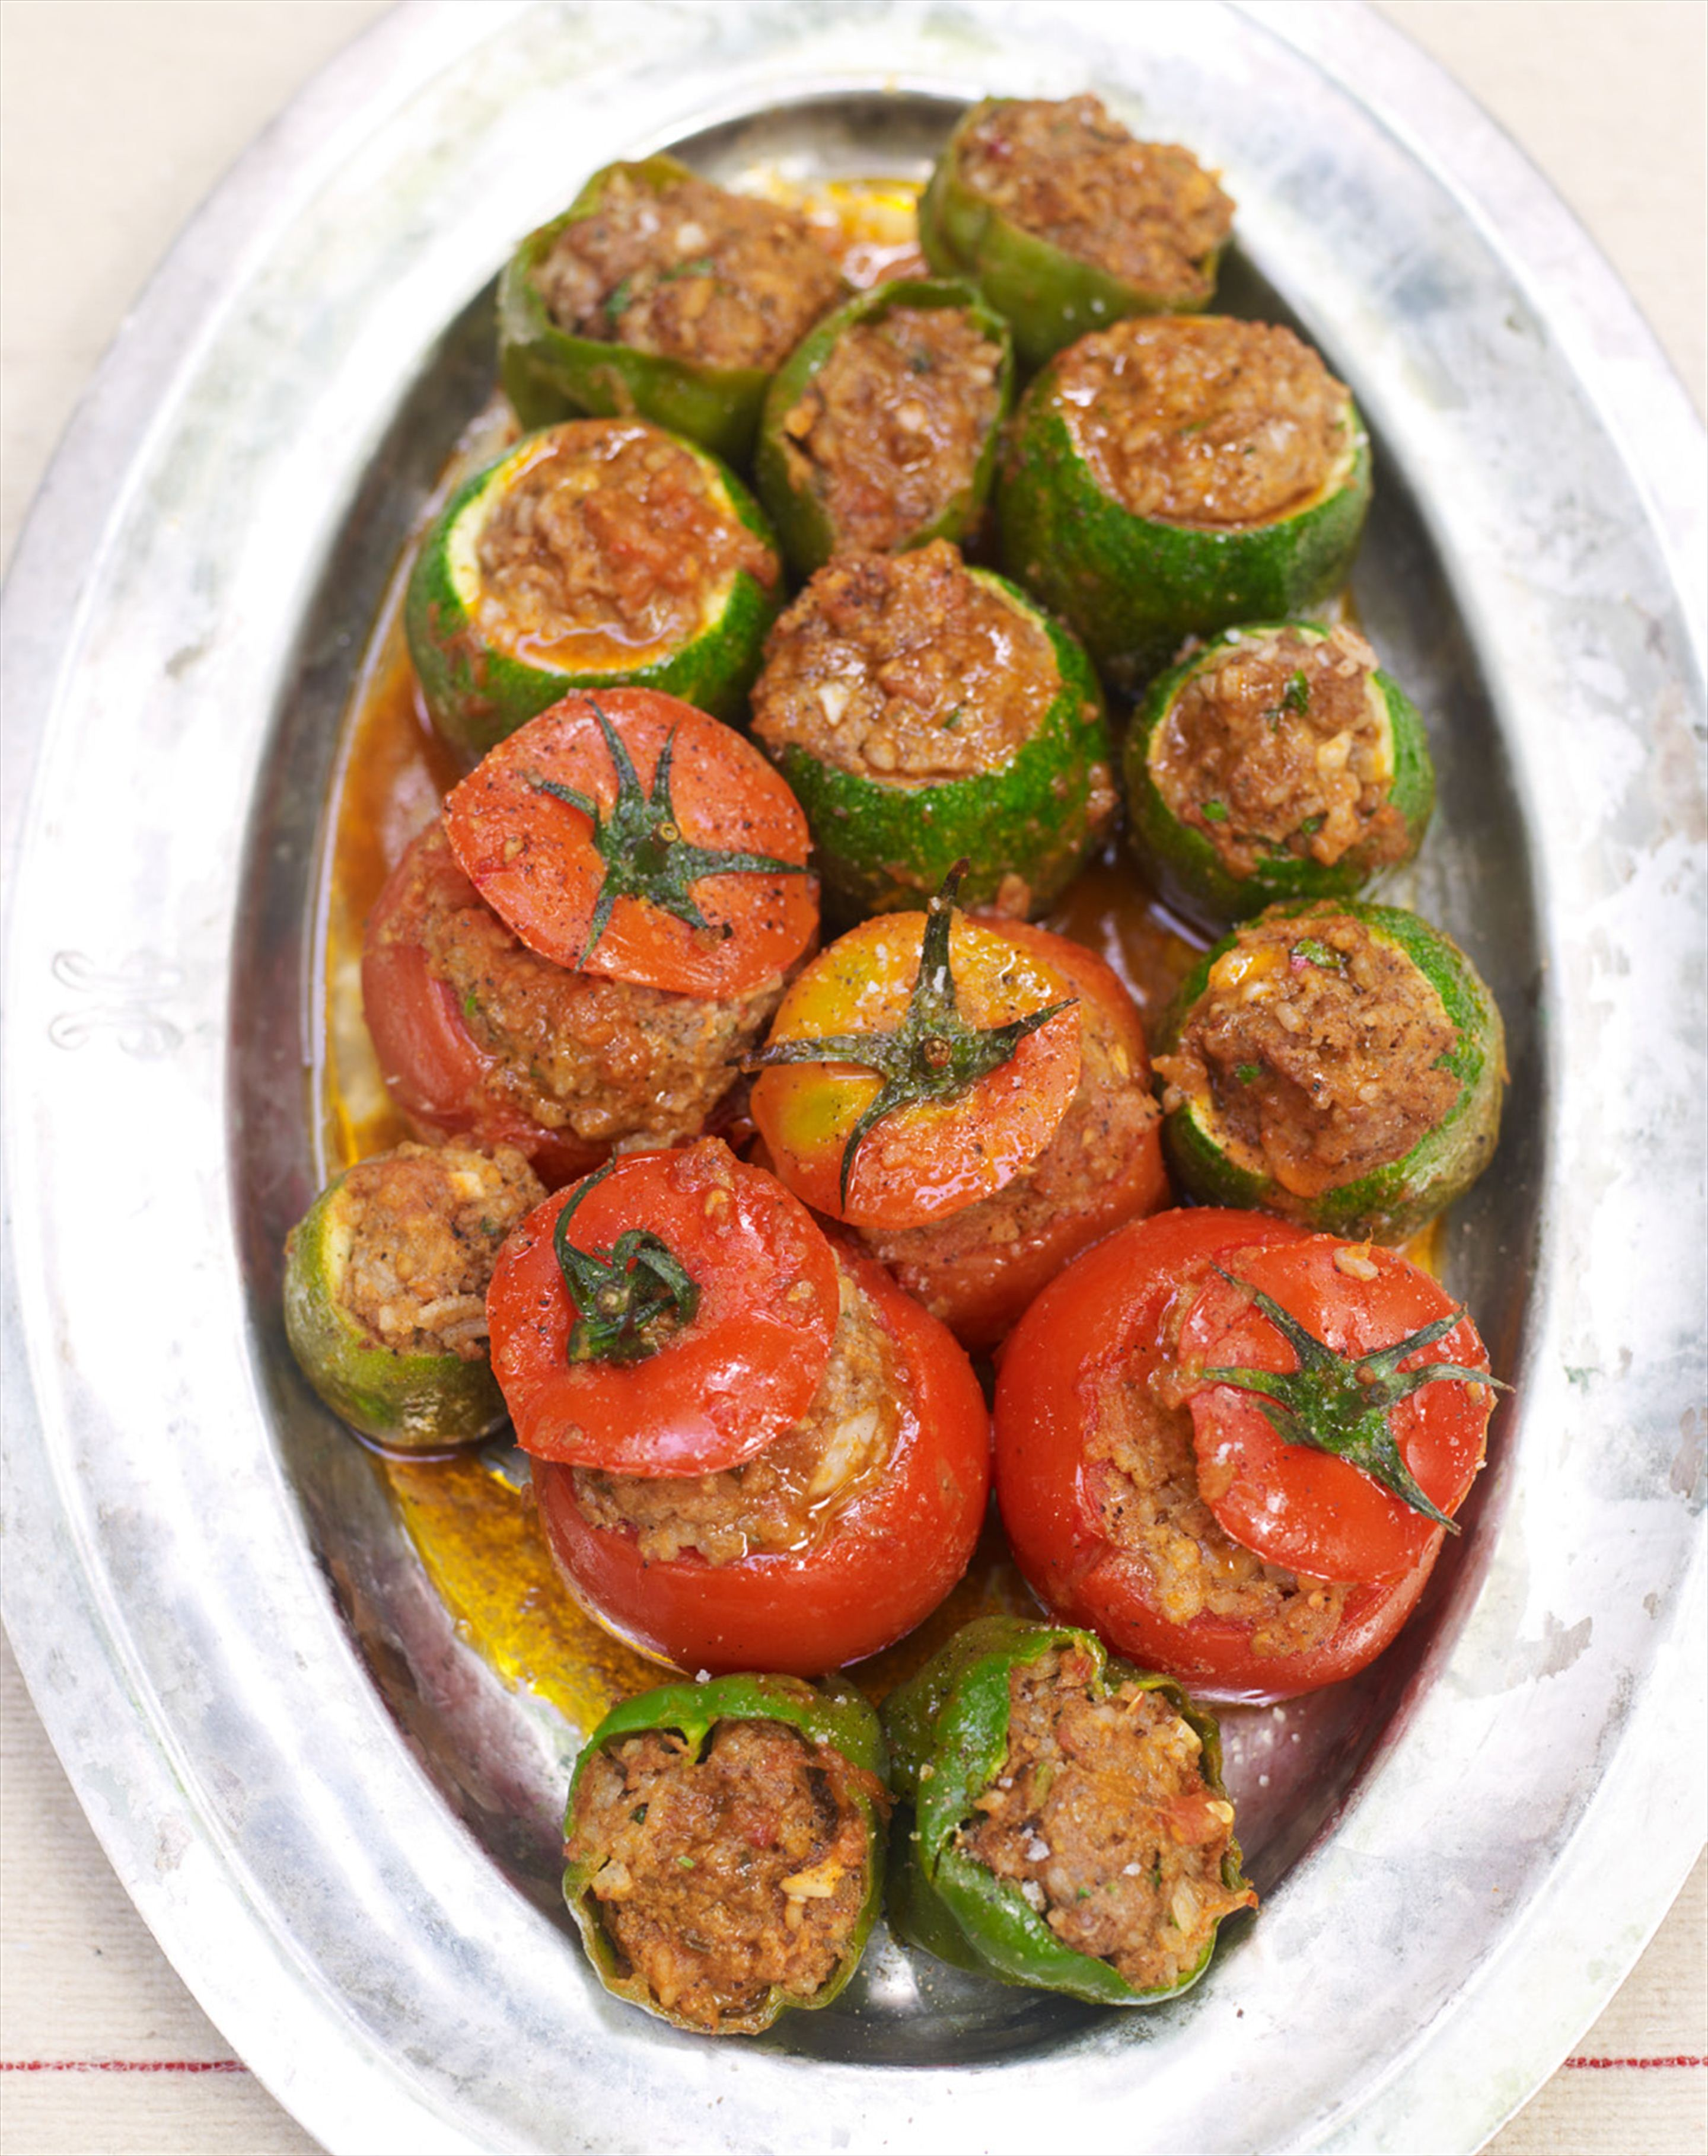 Stuffed baby vegetables